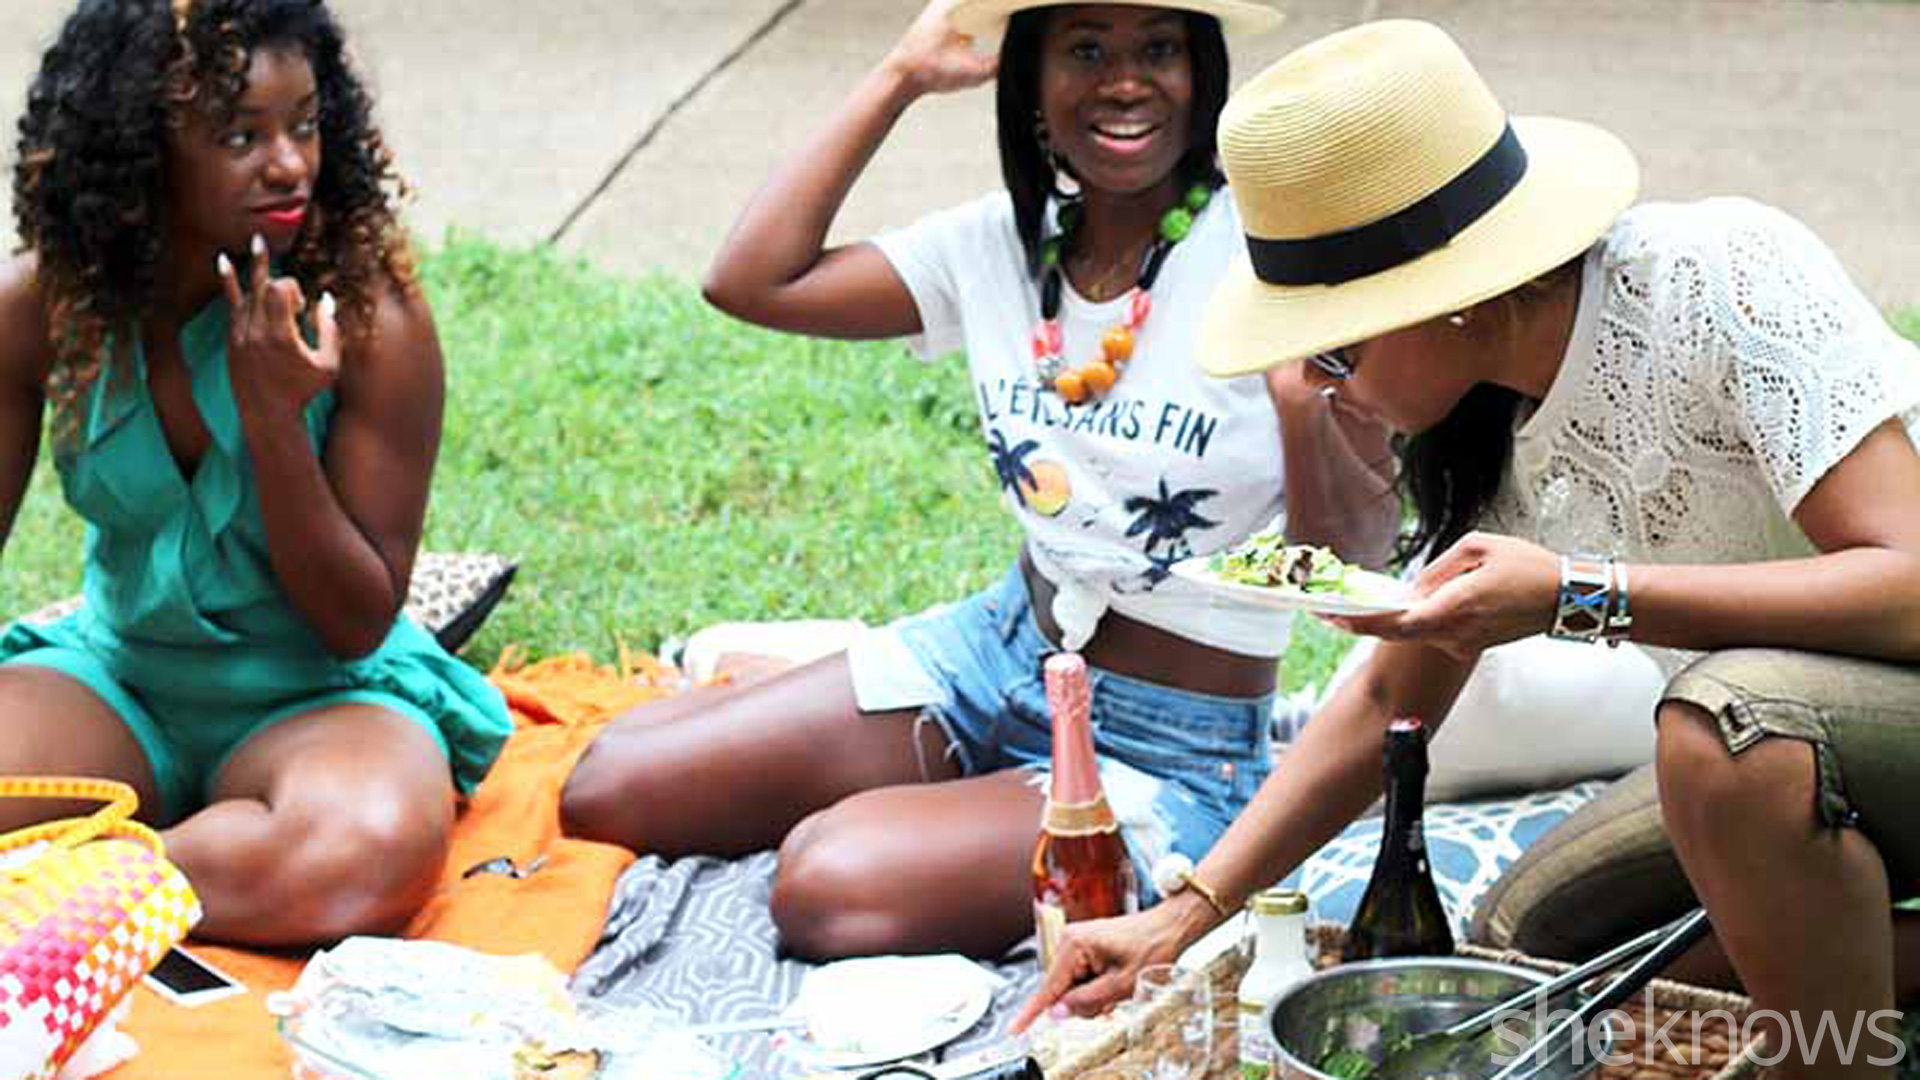 6 Tips for a fun end-of-summer picnic with friends – SheKnows